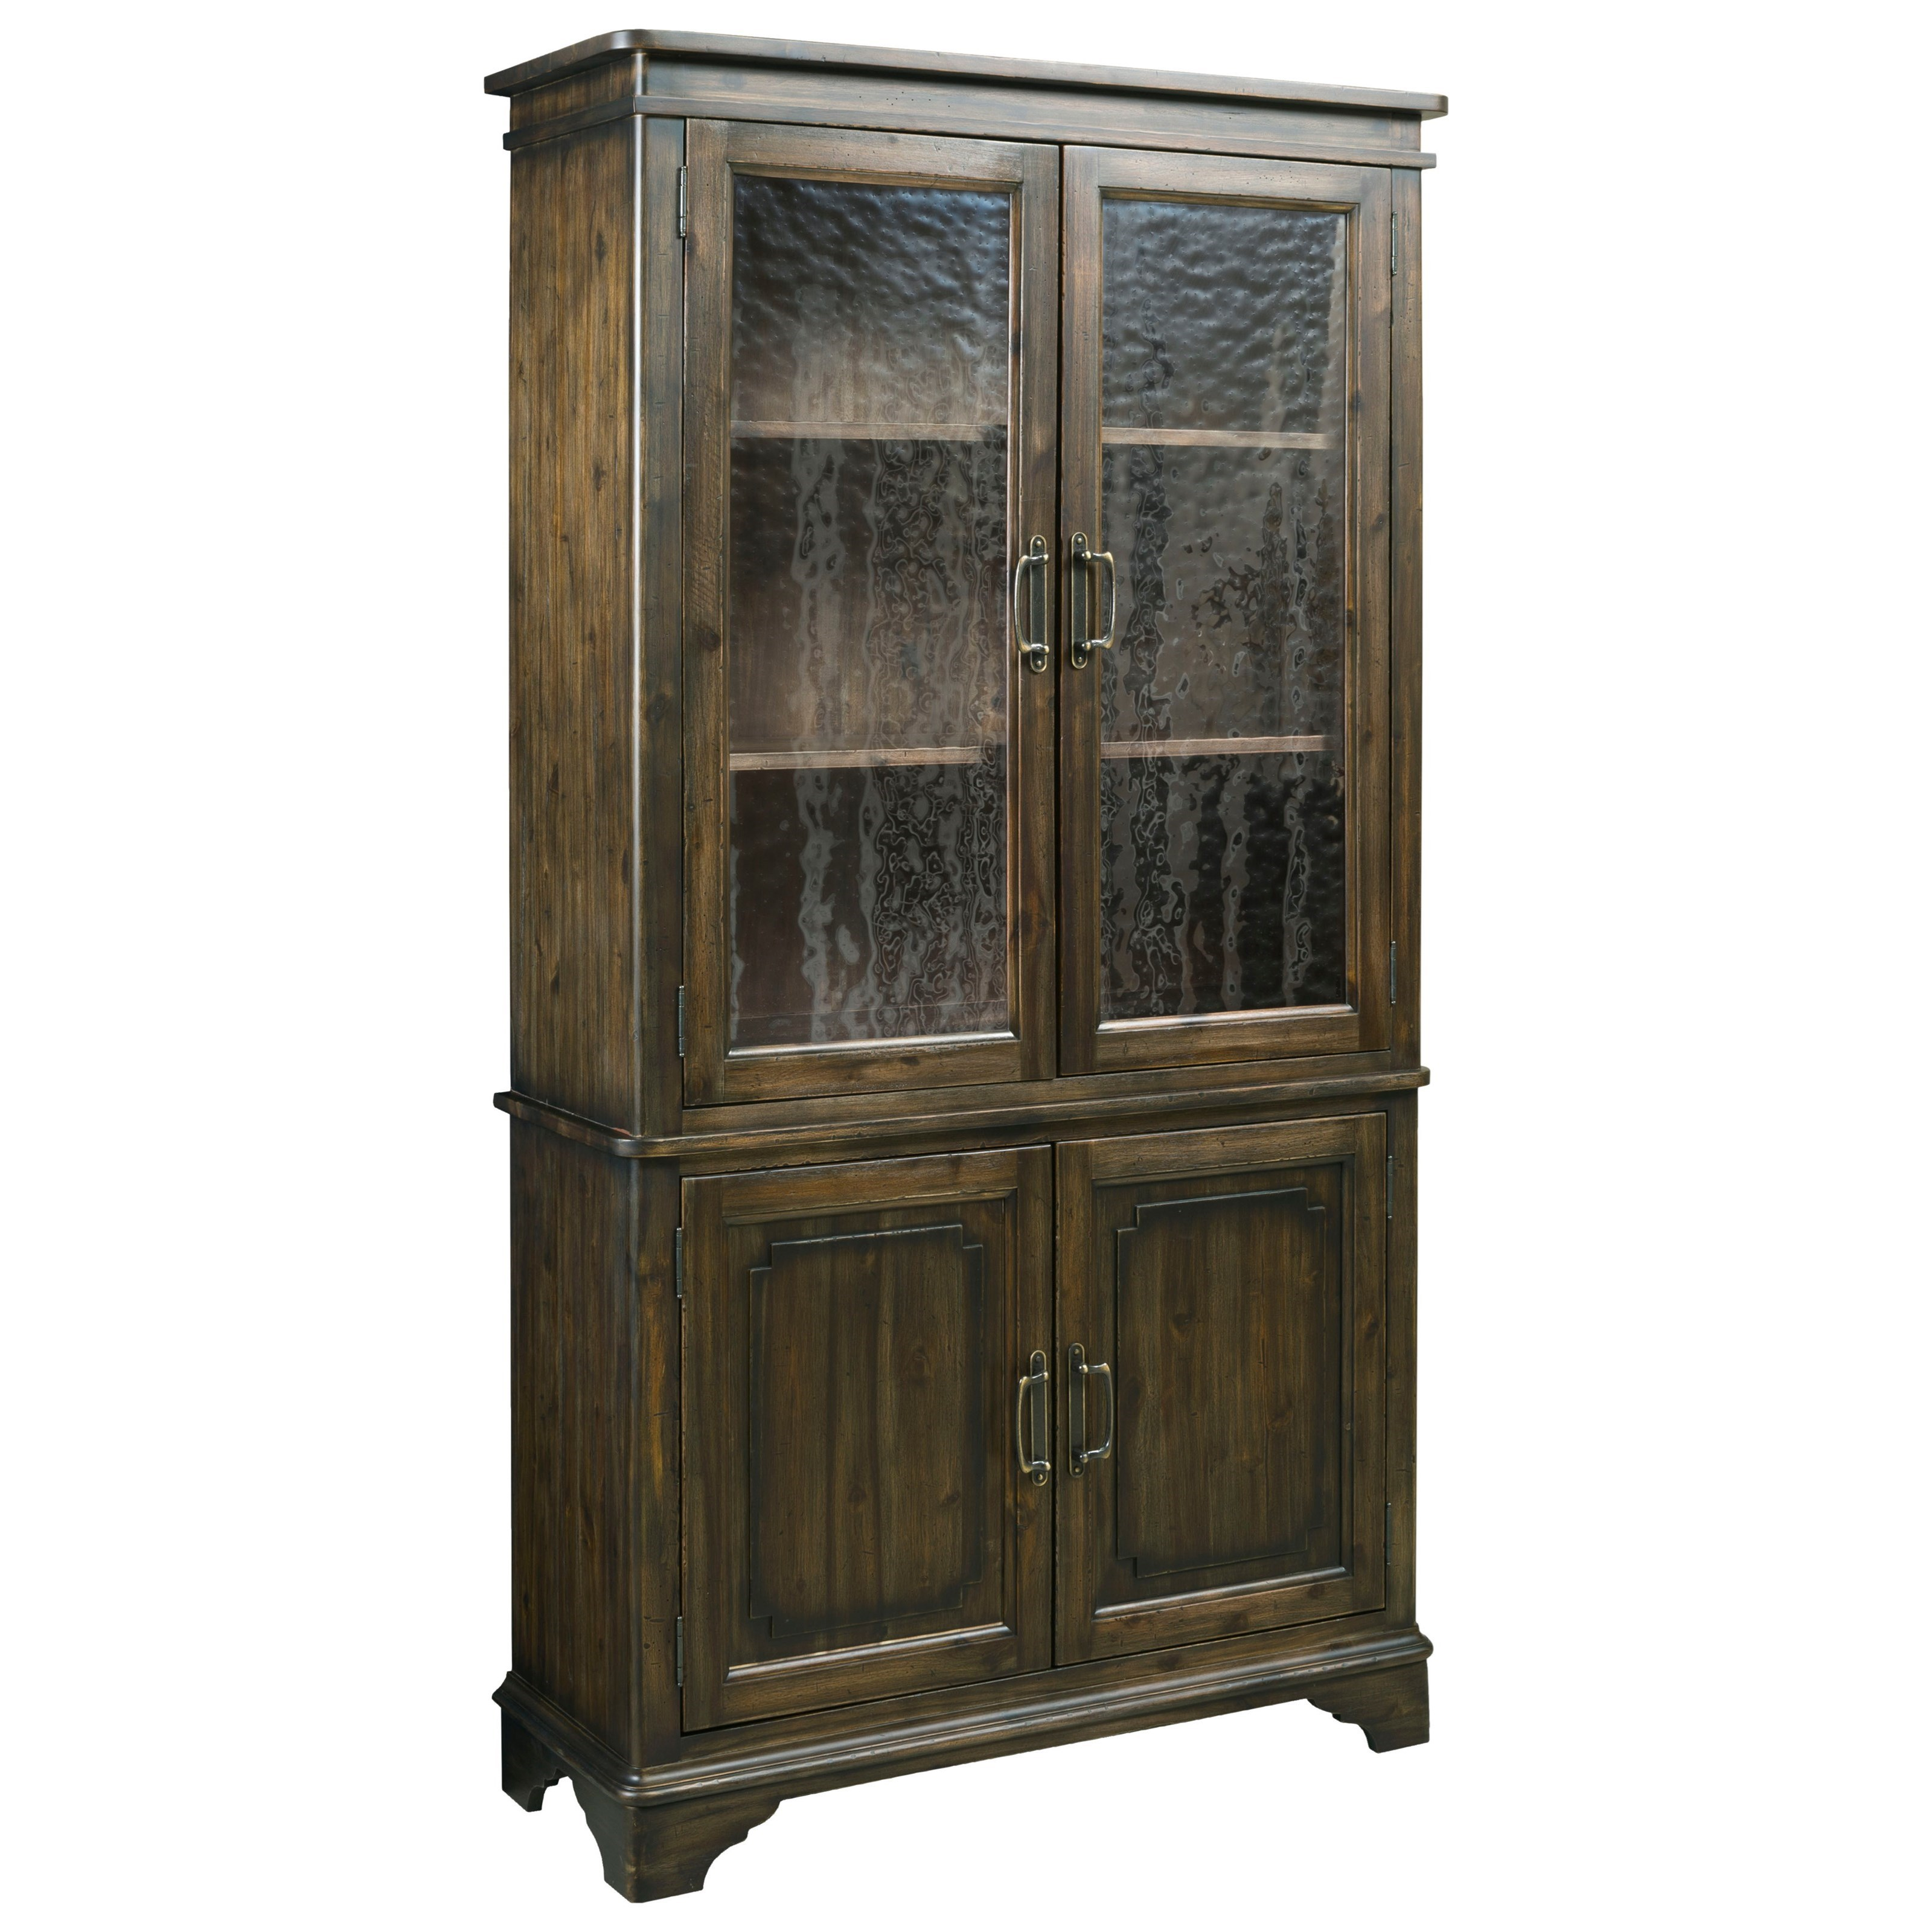 Glass Door Kitchen Cabinet Lighting: Kincaid Furniture Wildfire 86-080P Vintage China Cabinet